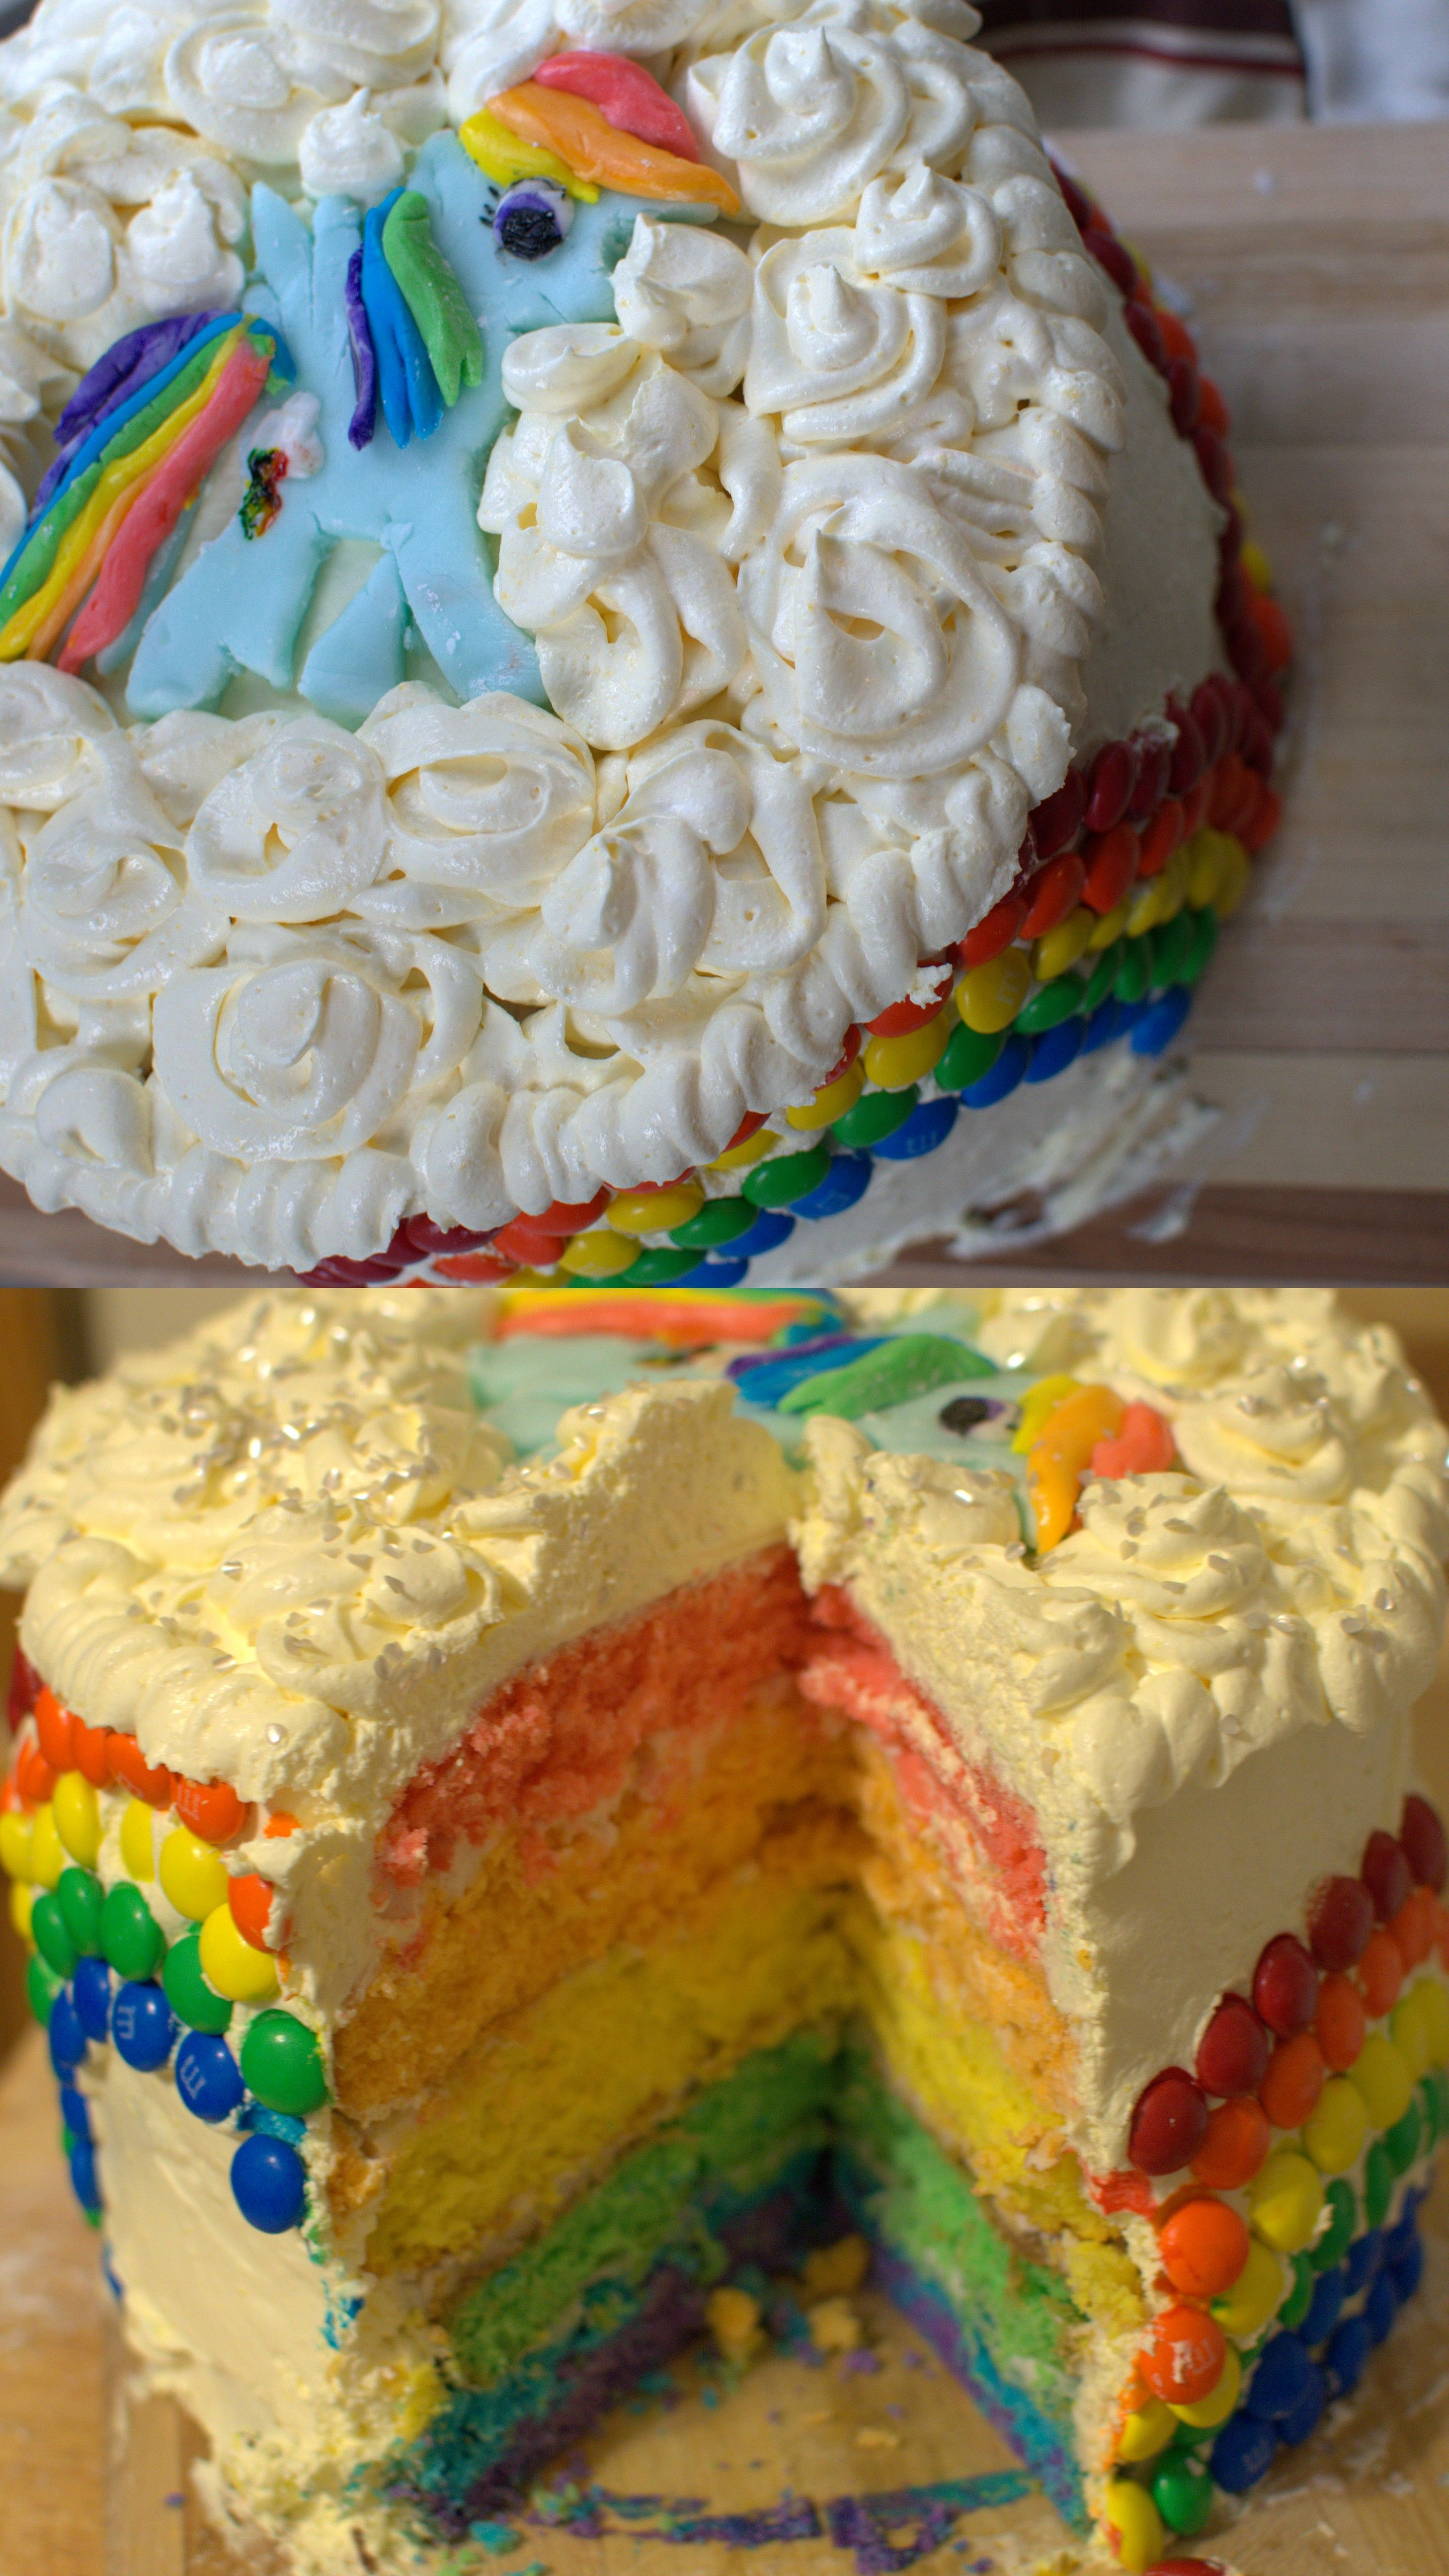 Rainbow Dash Cake by me Jenn Schaller for my CallaBug's 5th Birthday..as promised Mama Delivered. #mylittlepony #rainbowdash